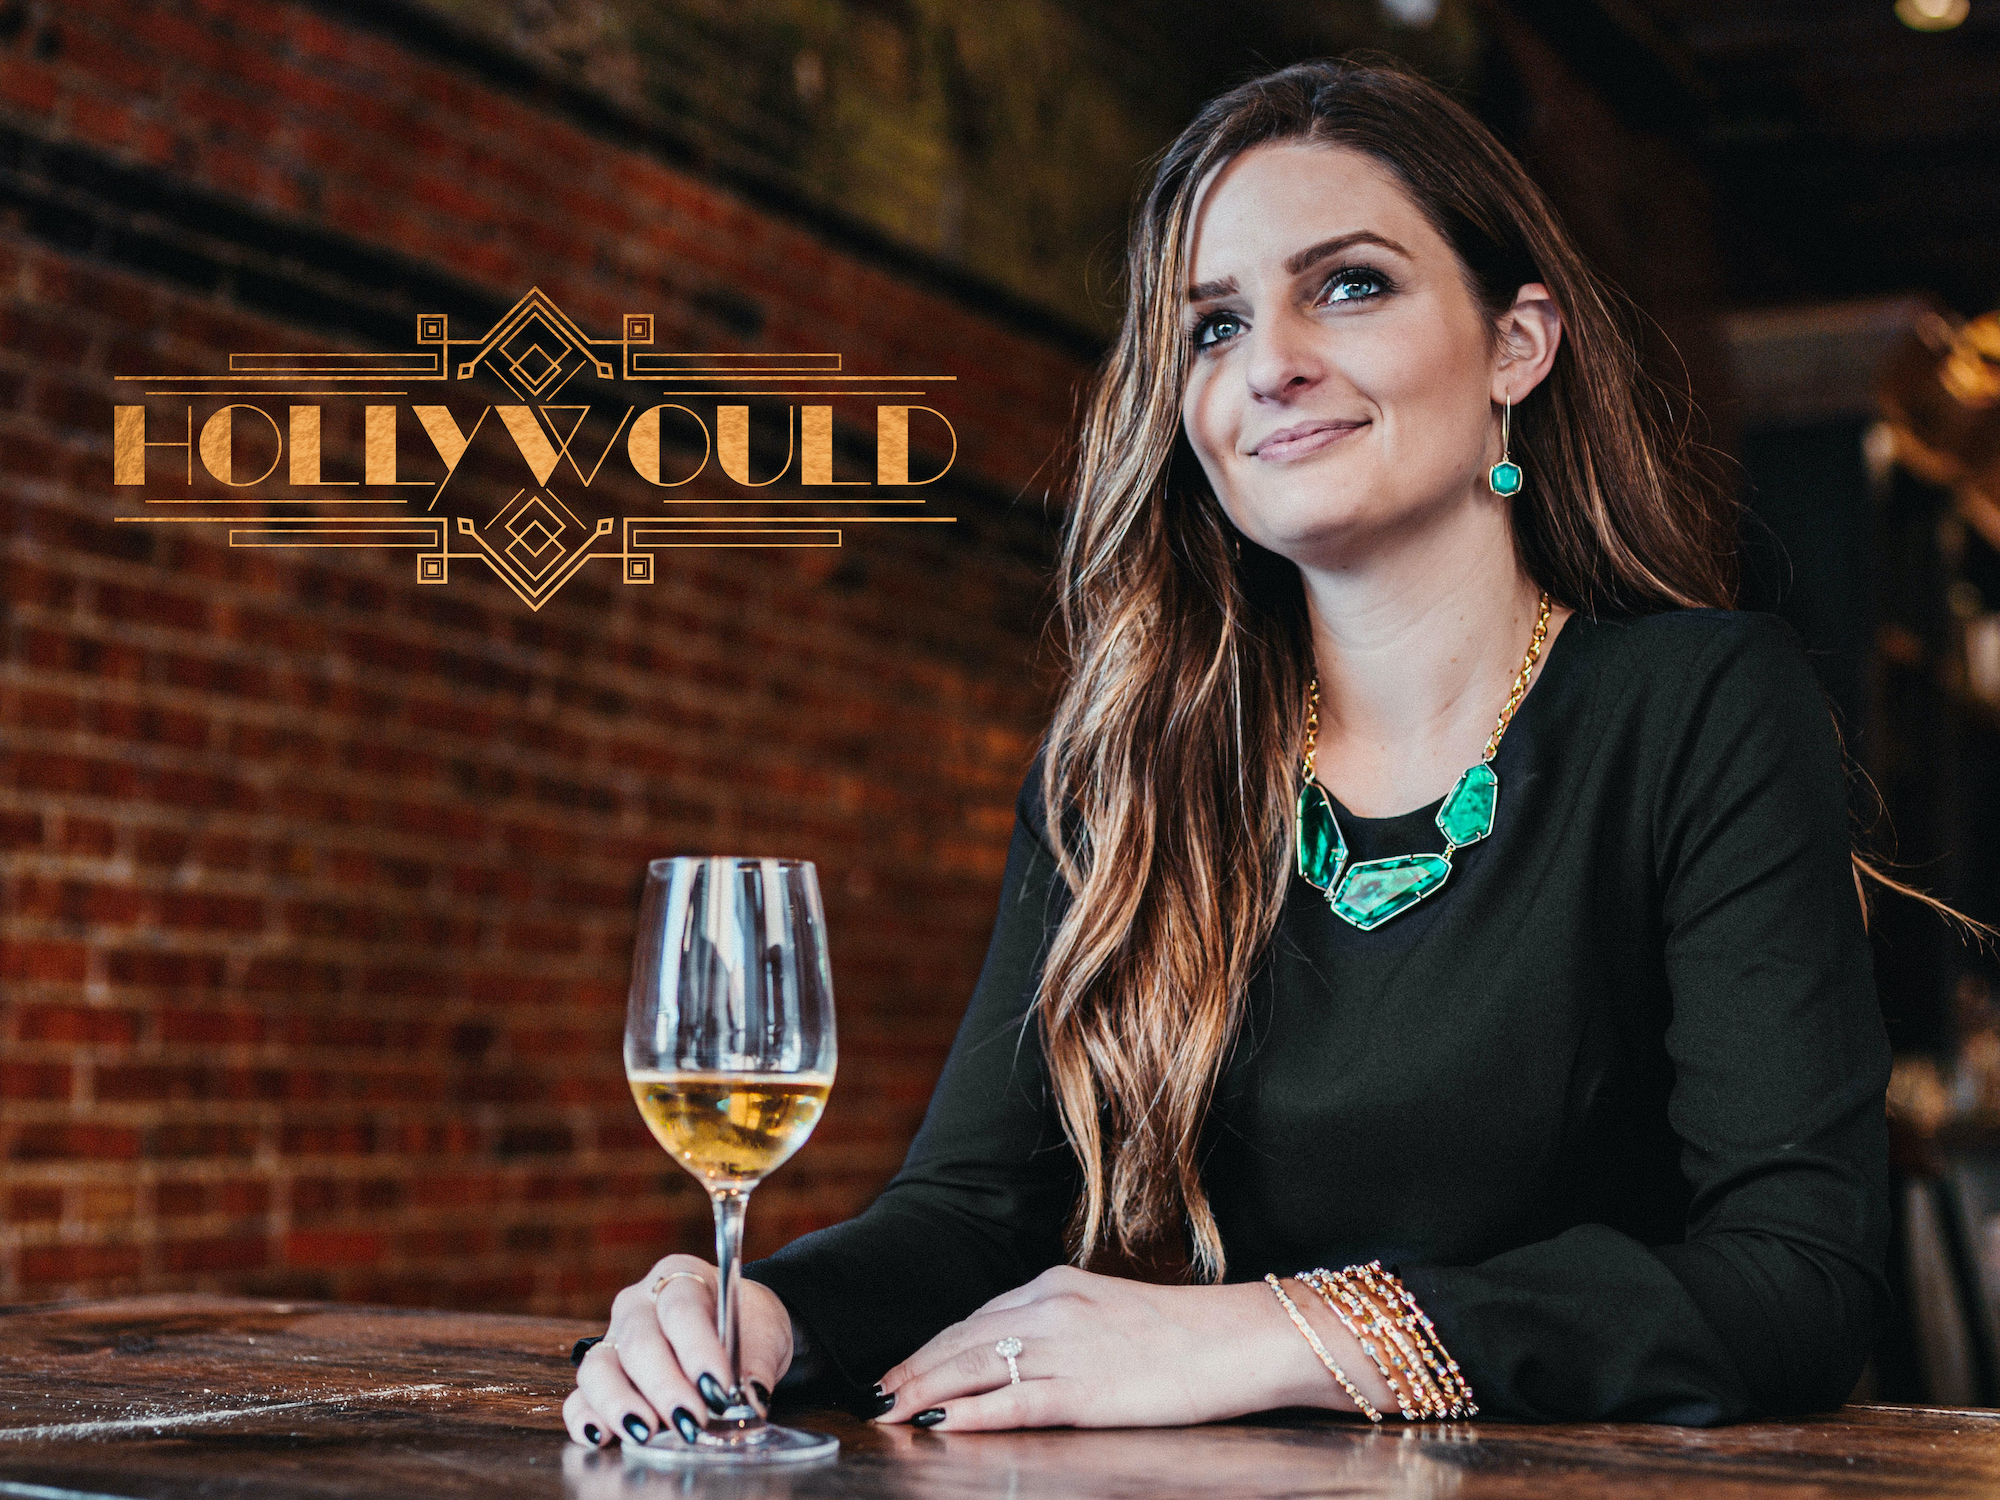 Headshot of team member Holly next to the Hollywould logo with a glass of white wine